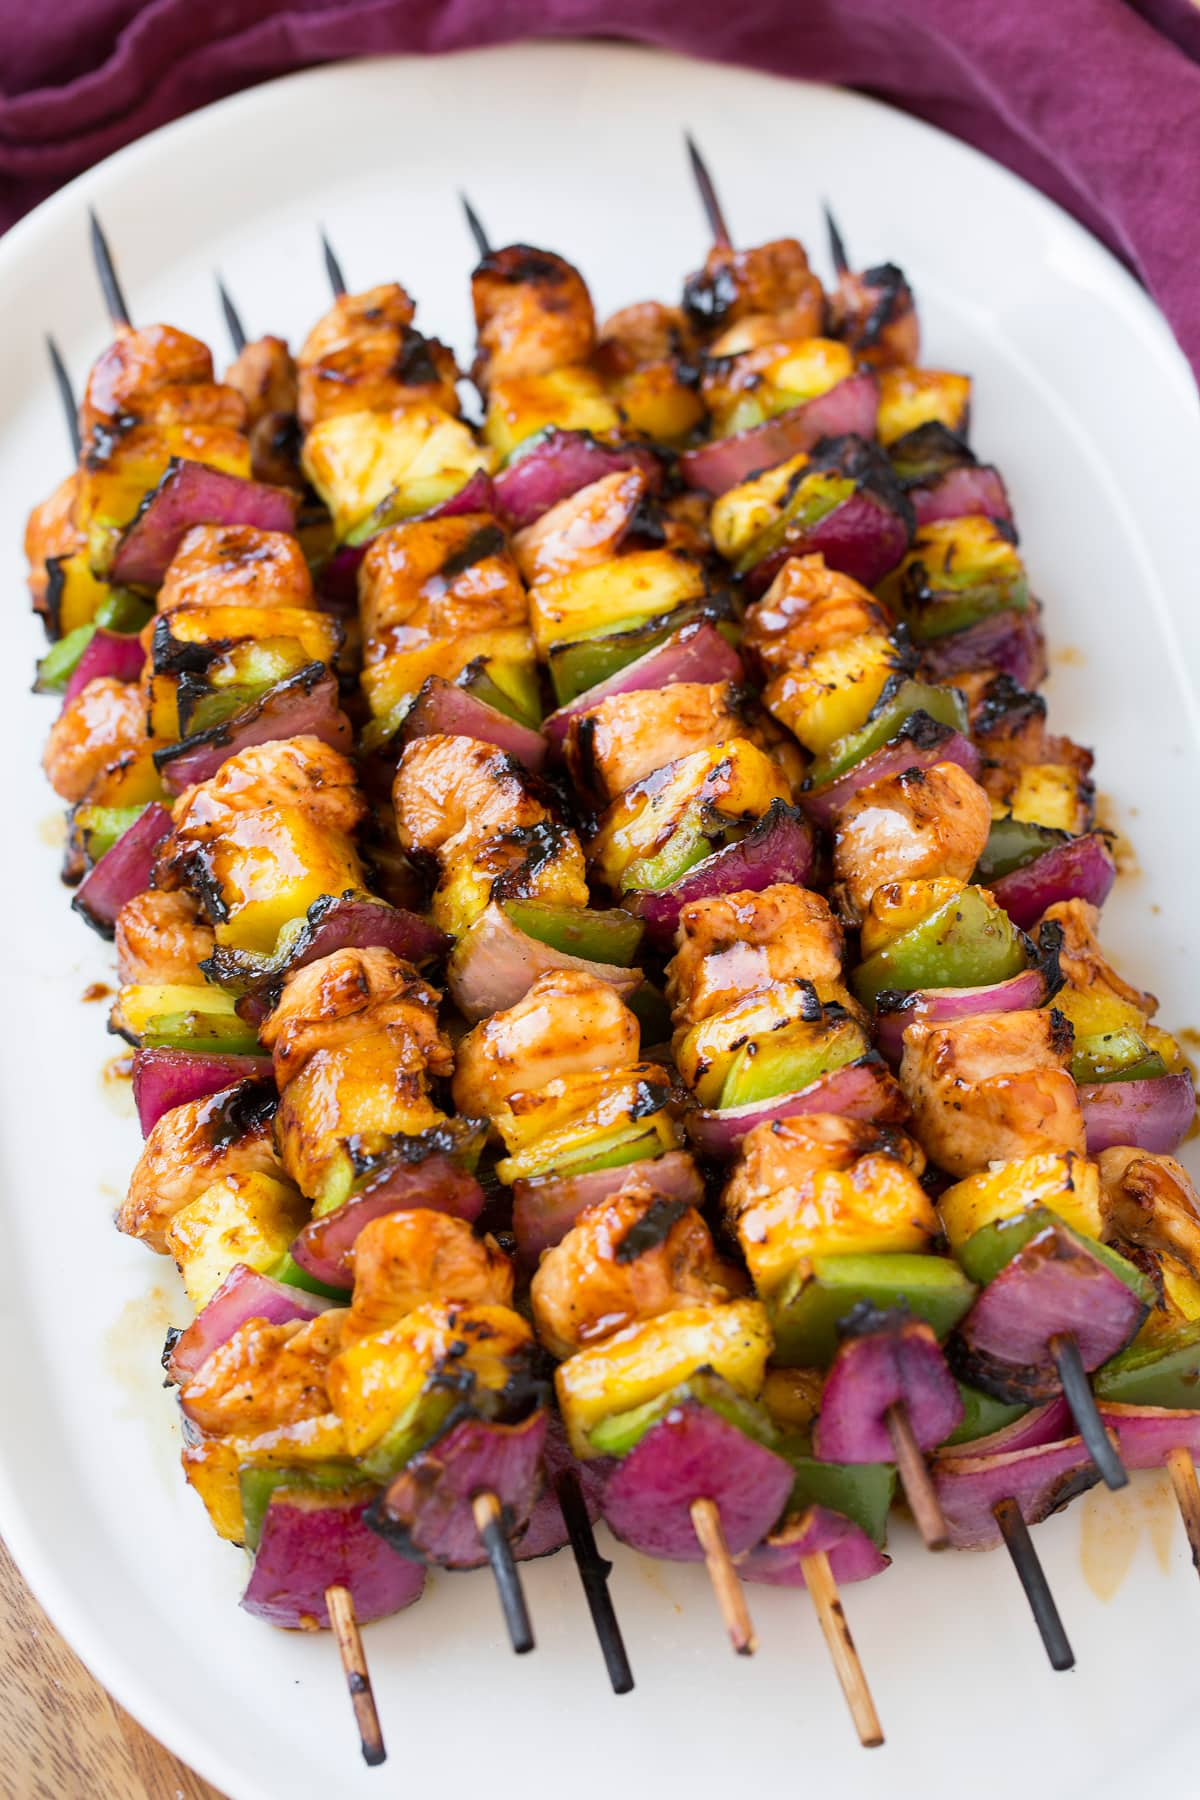 Marinated hawaiian chicken skewers on a white serving plate.